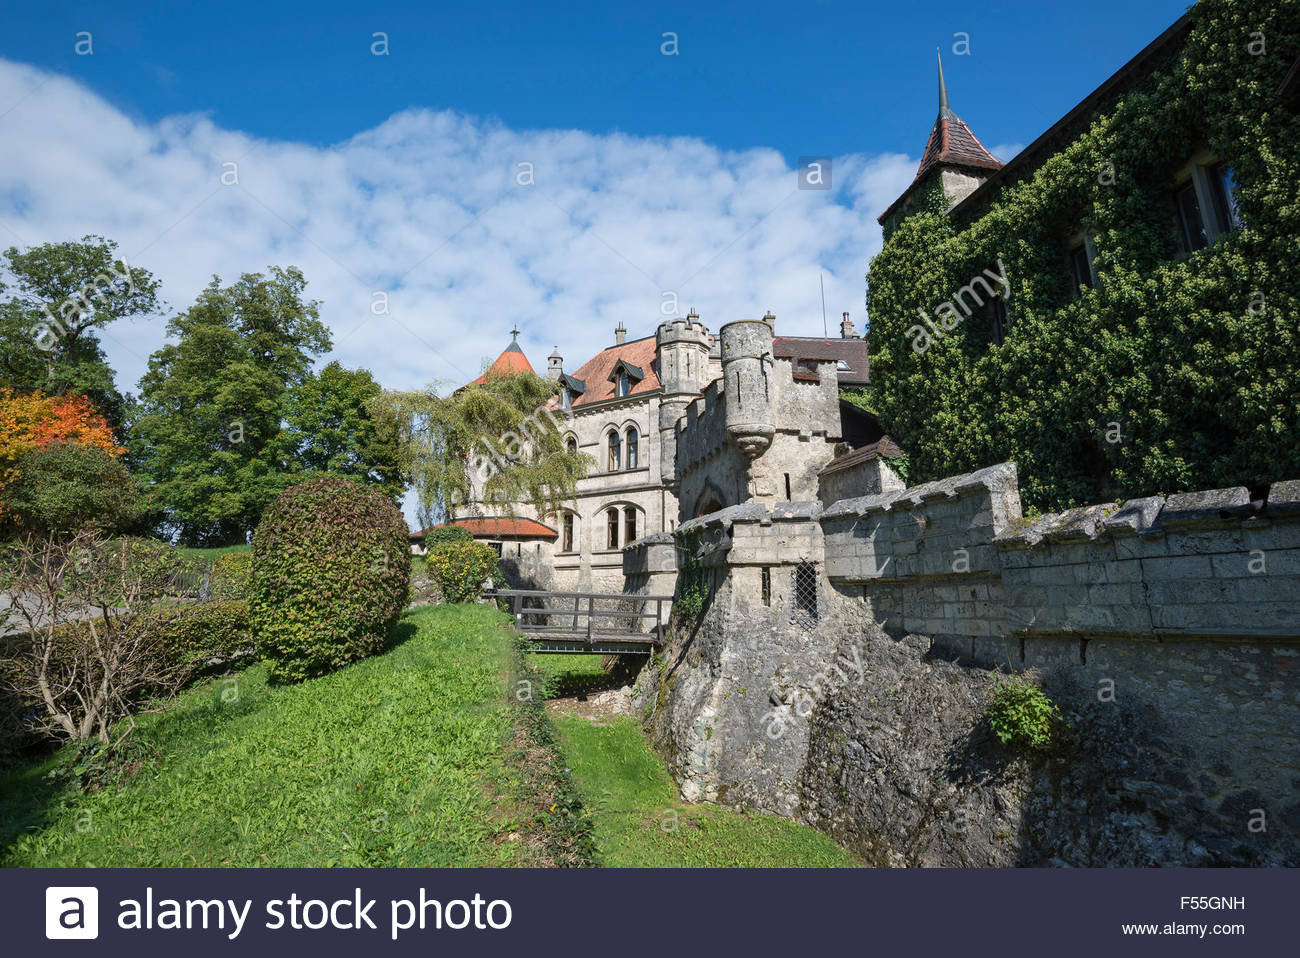 germany baden wuerttemberg reutlingen lichtenstein castle stock photo royalty free image. Black Bedroom Furniture Sets. Home Design Ideas